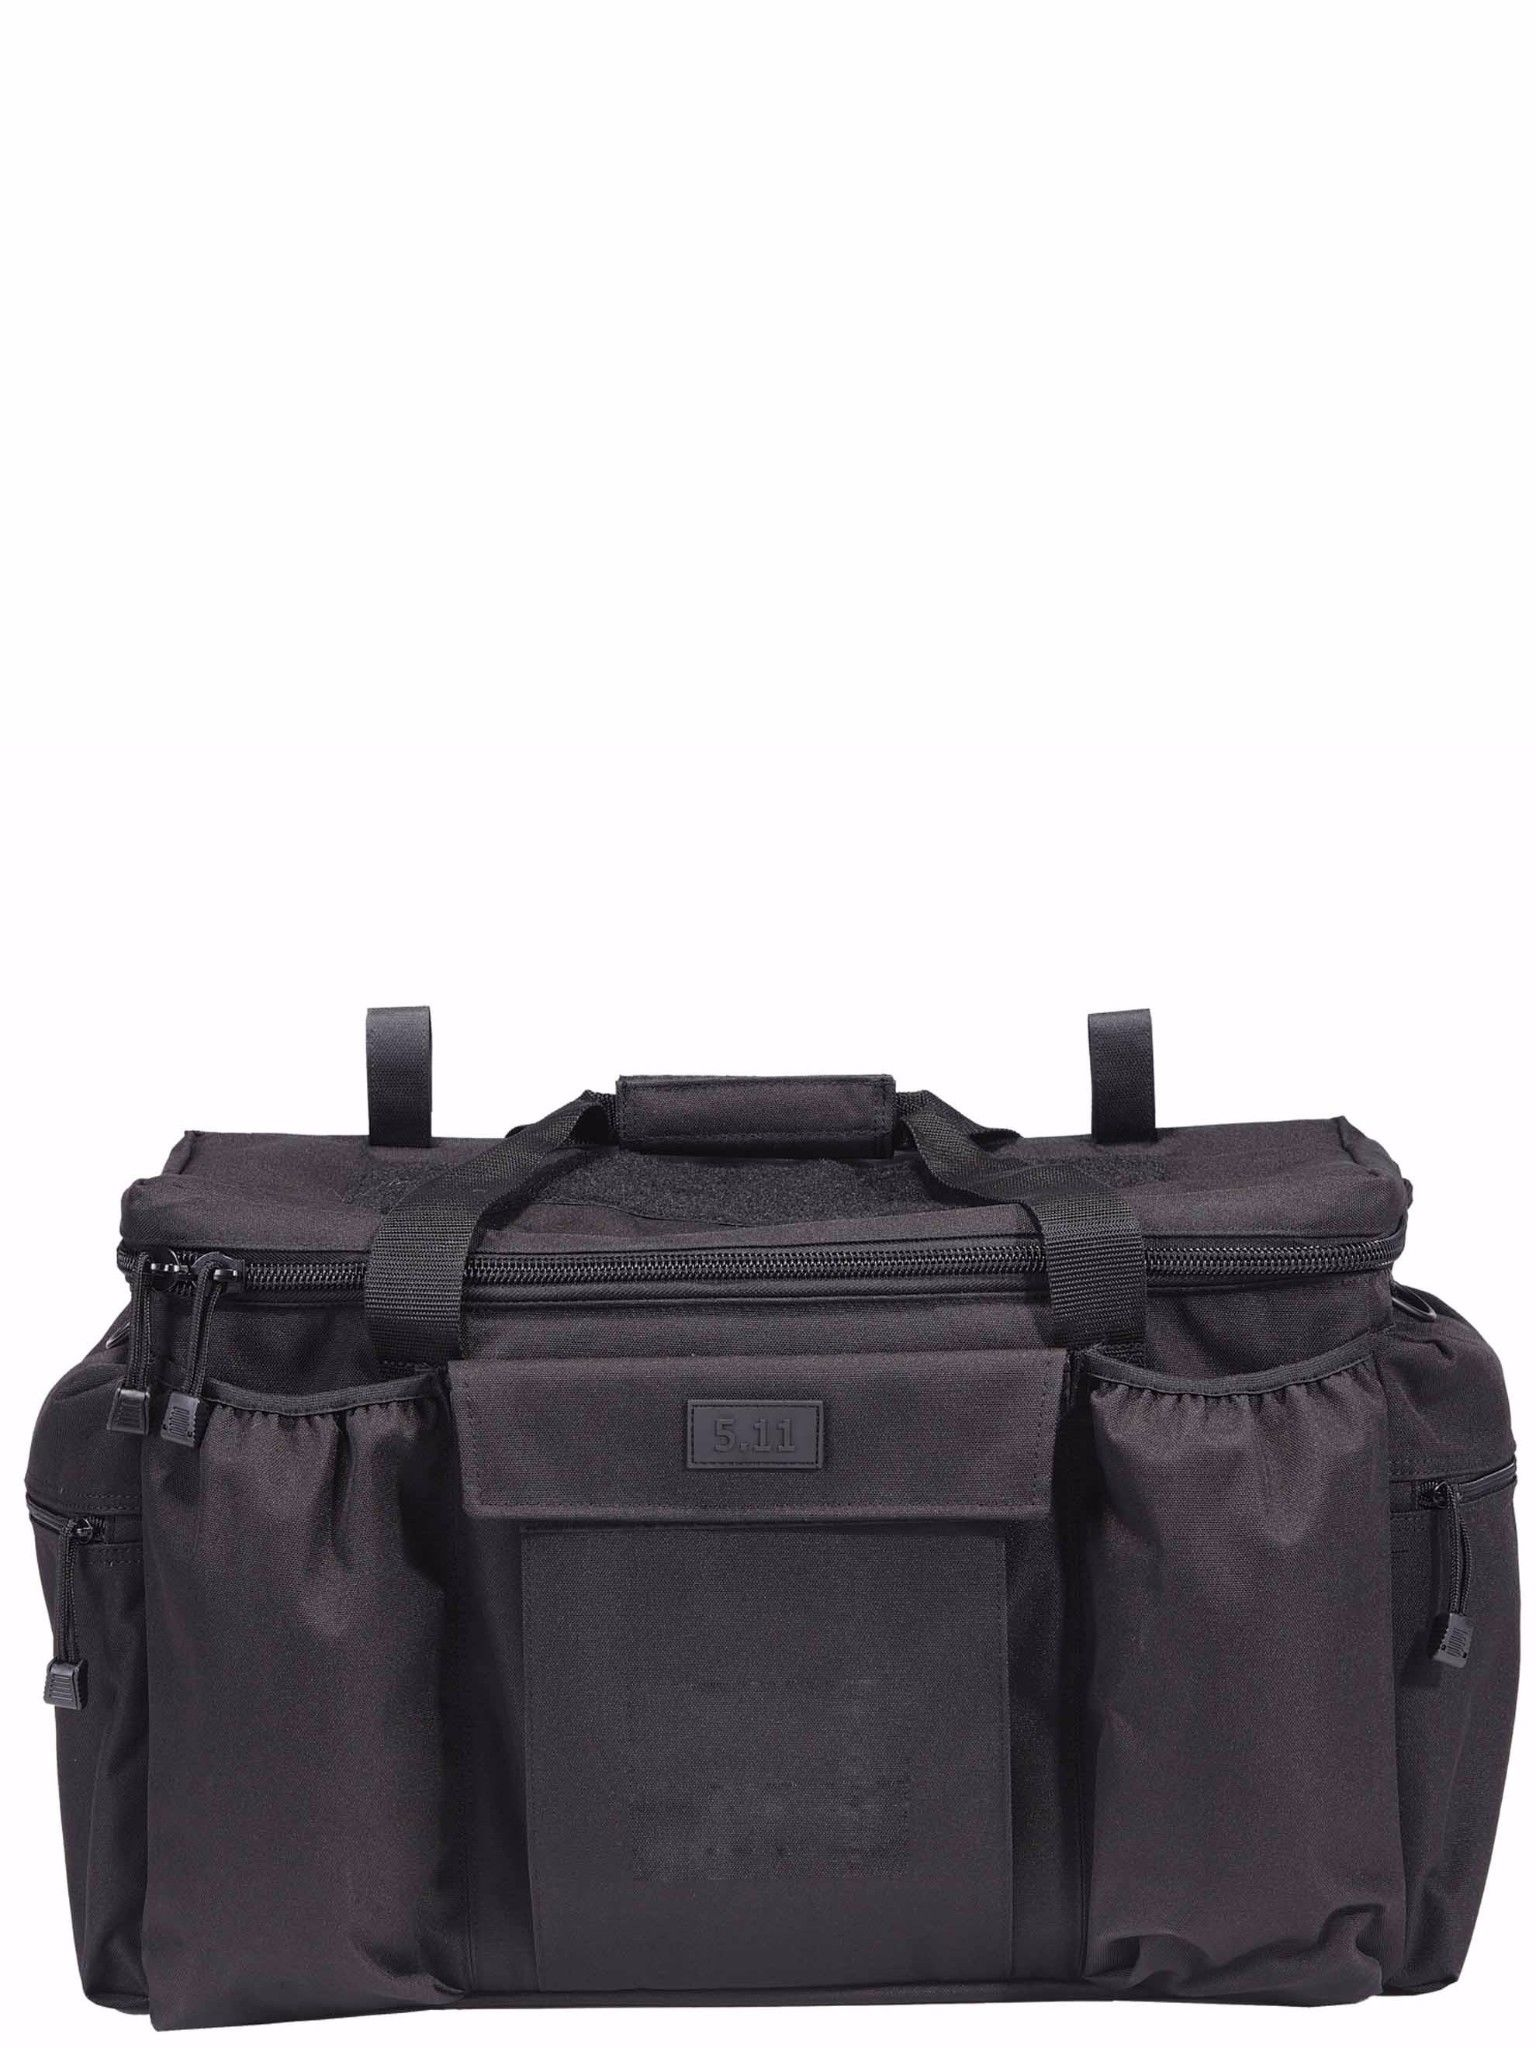 5.11 Tactical Patrol Ready 2 Bag (M) Black